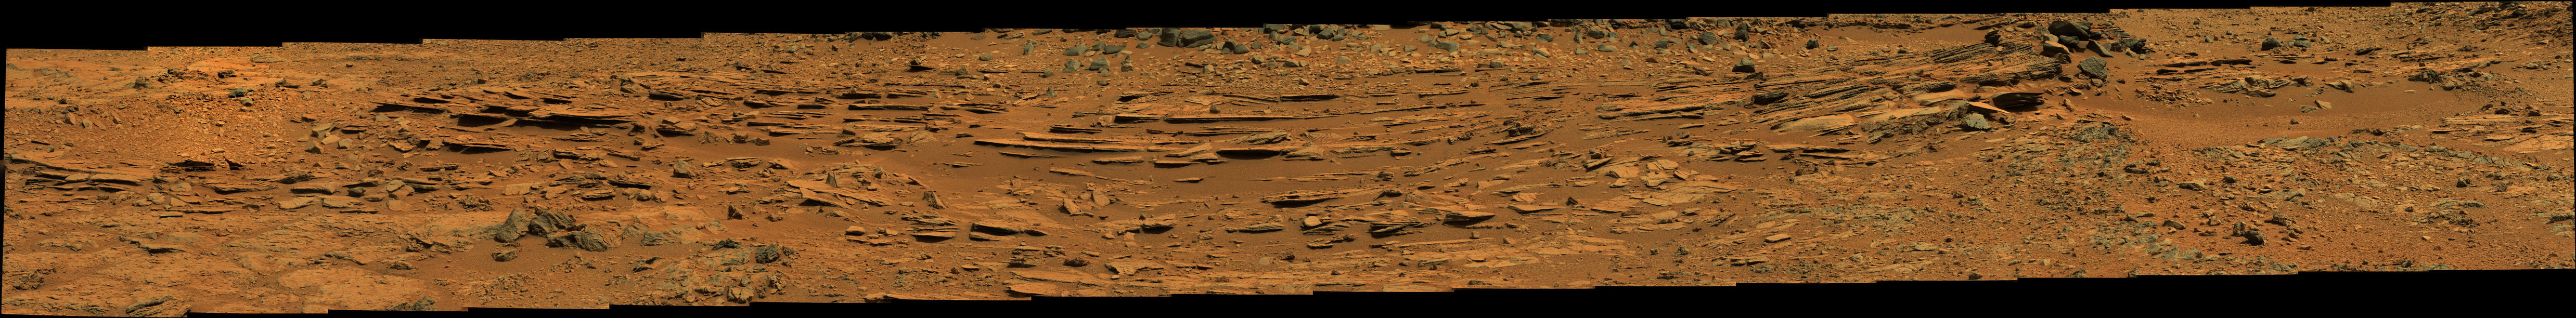 "The ""Shaler"" outcrop is dramatically layered, as seen in this mosaic of telephoto images from the right Mast Camera (Mastcam) on NASA's Mars rover Curiosity."